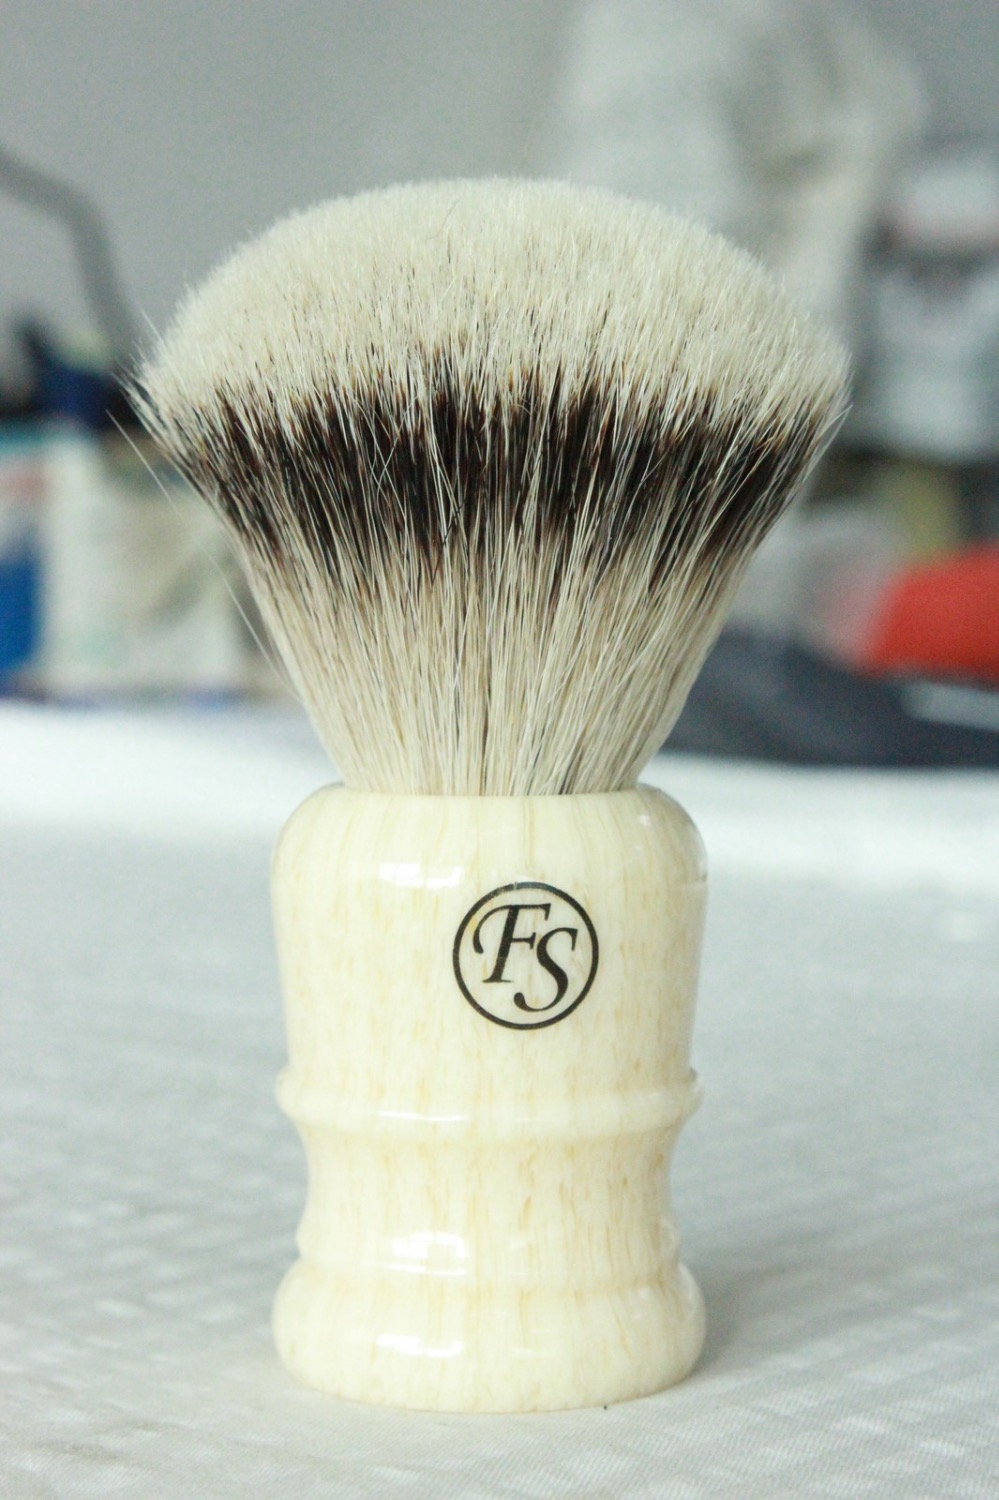 Promotion: FS-24mm 100% FLAT Top Silvertip Badger Shaving Brush With Faux Ivory Handle+FREE STAND+FREE SHIPPING